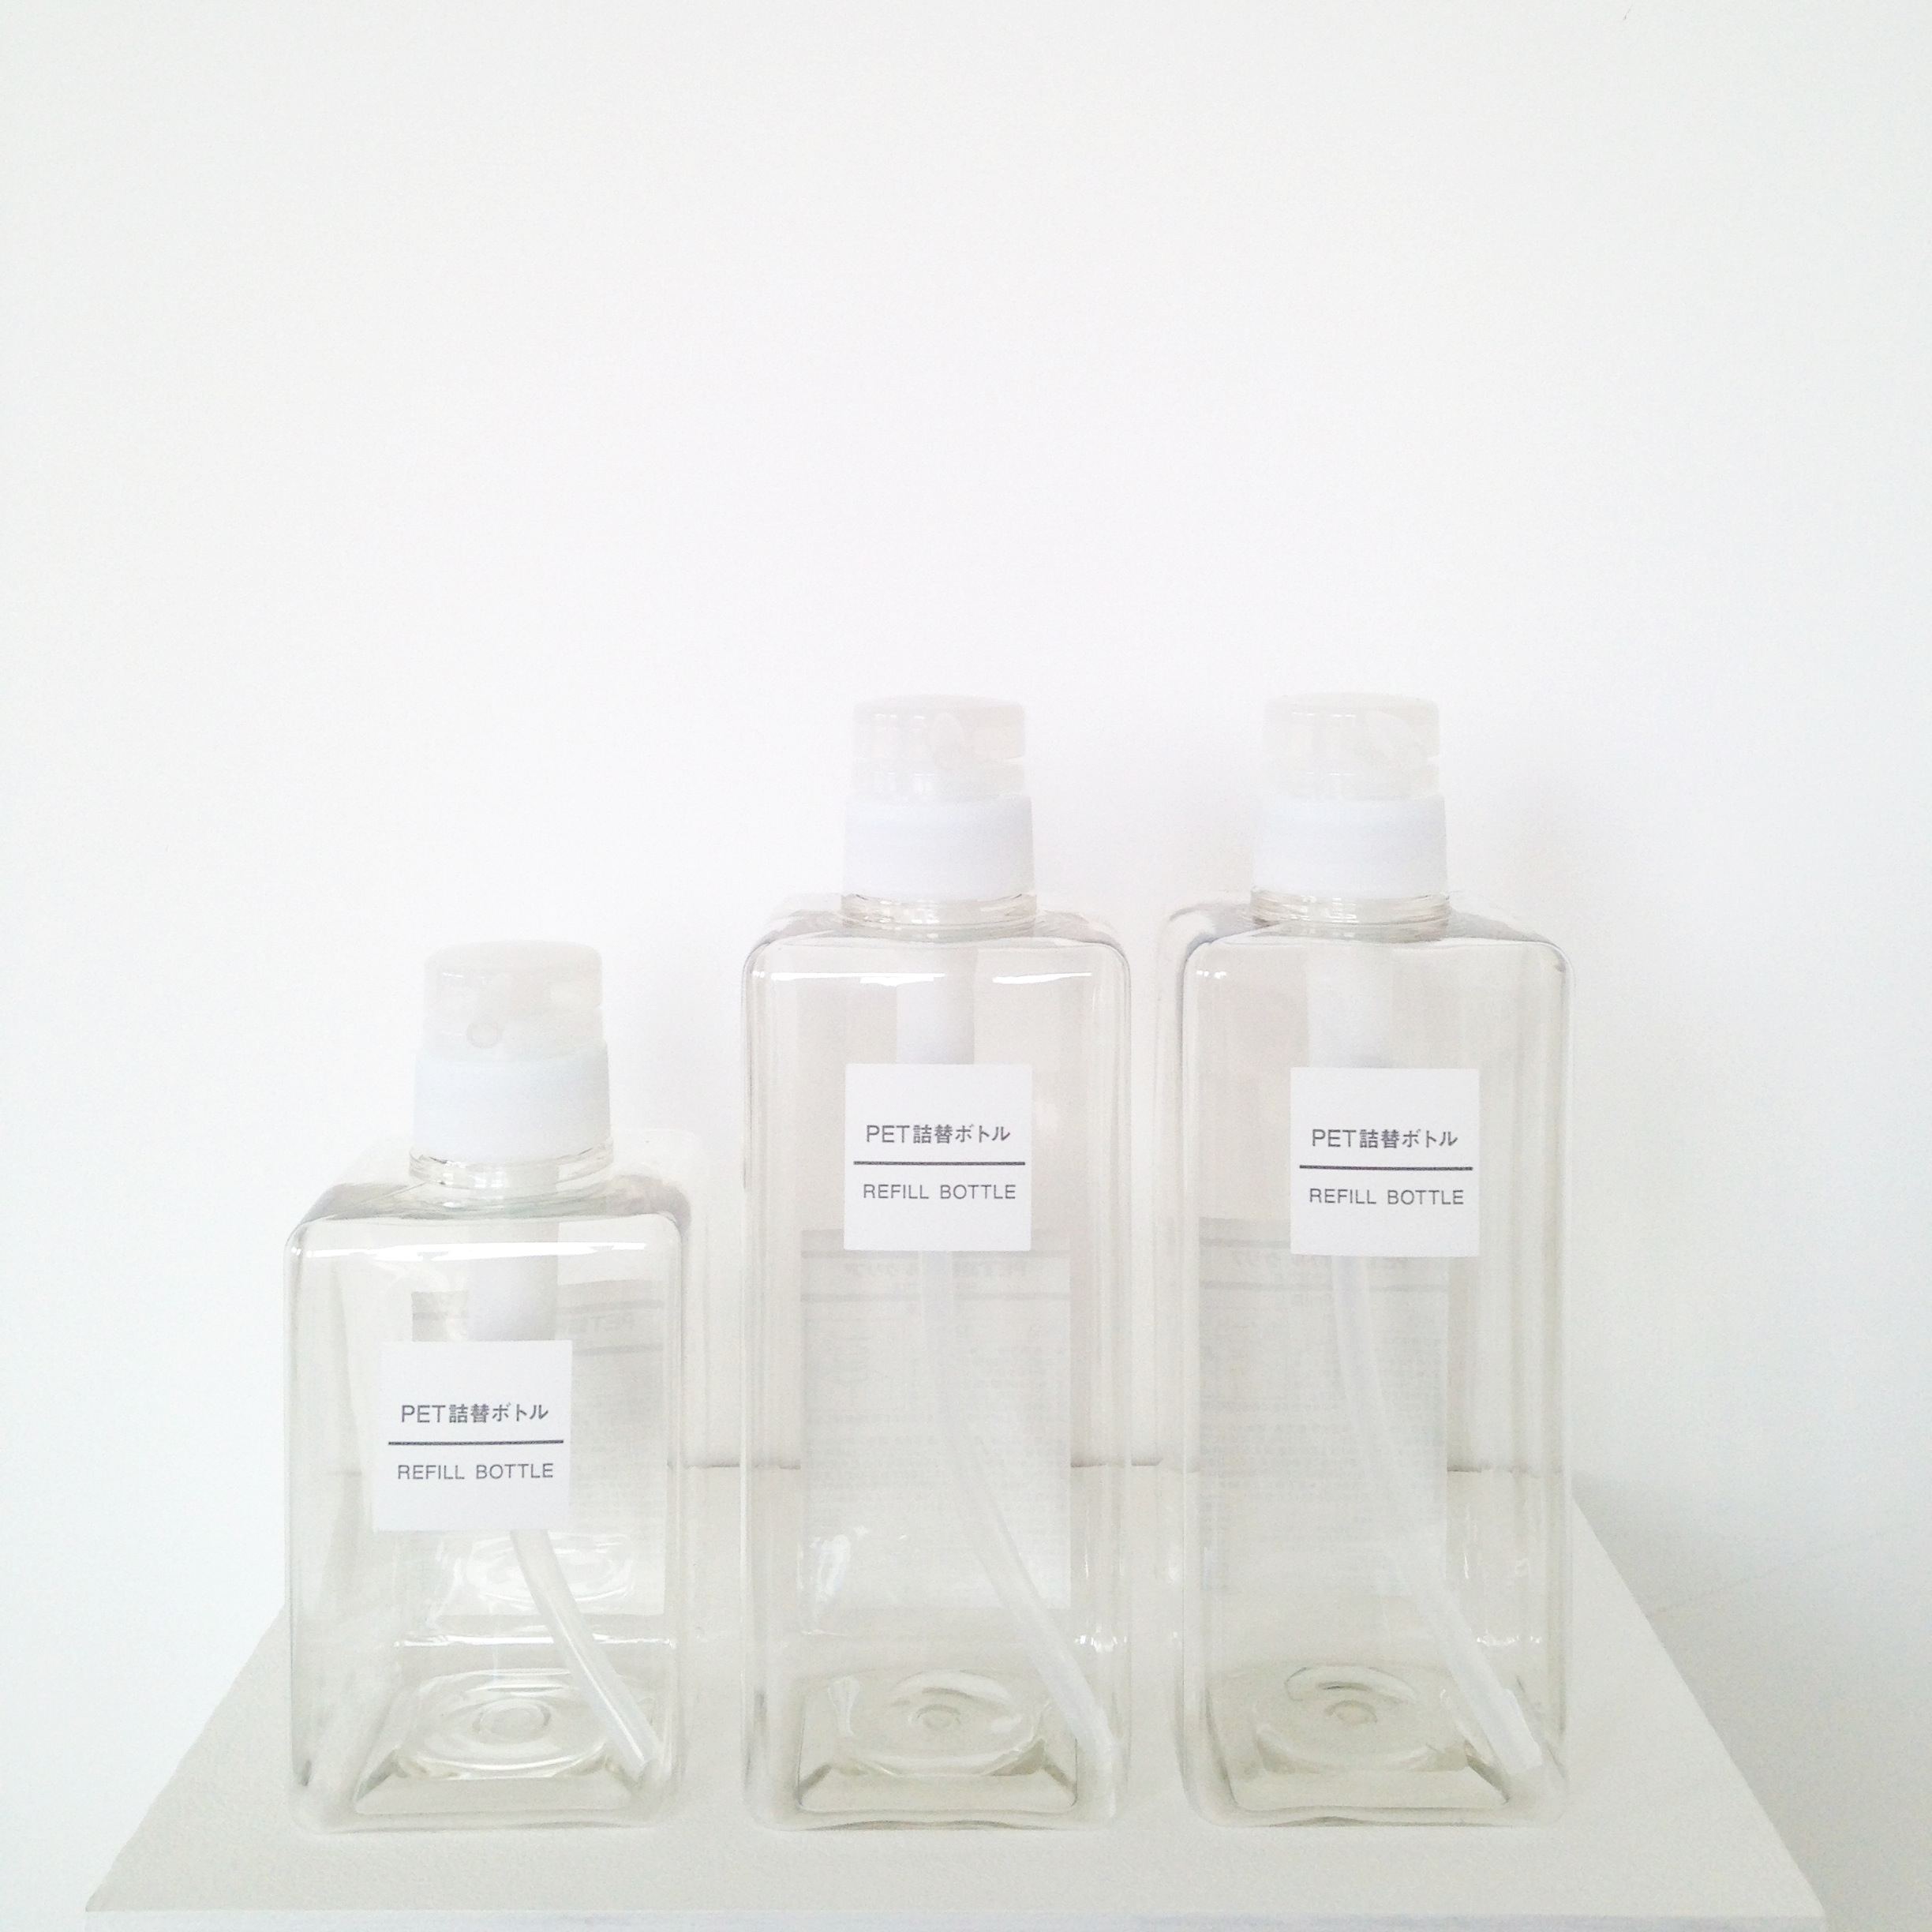 4//. these incredibly cool bottles also from Muji for making my shampoo, conditioner & shower gel look awesome. {I love simple, functional design - its just so beautiful}.